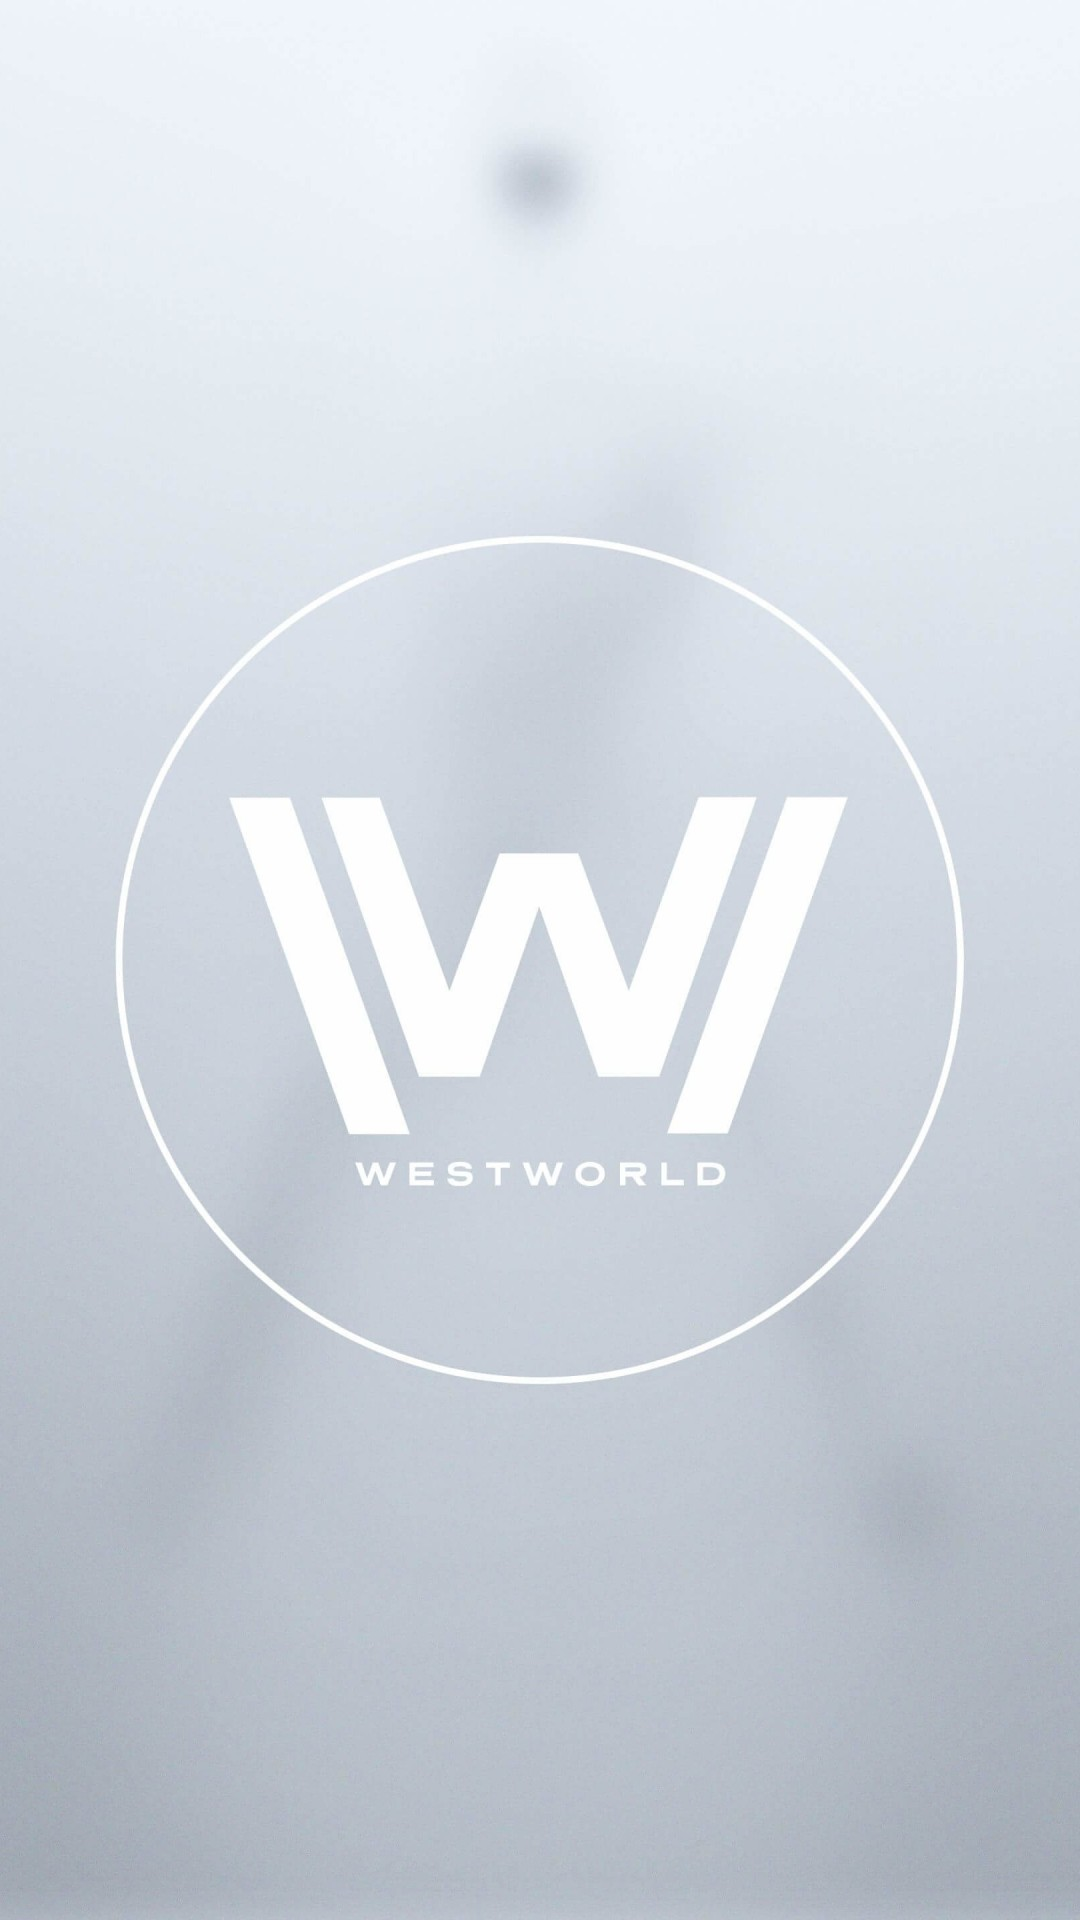 Westworld Logo Wallpaper for SAMSUNG Galaxy S4